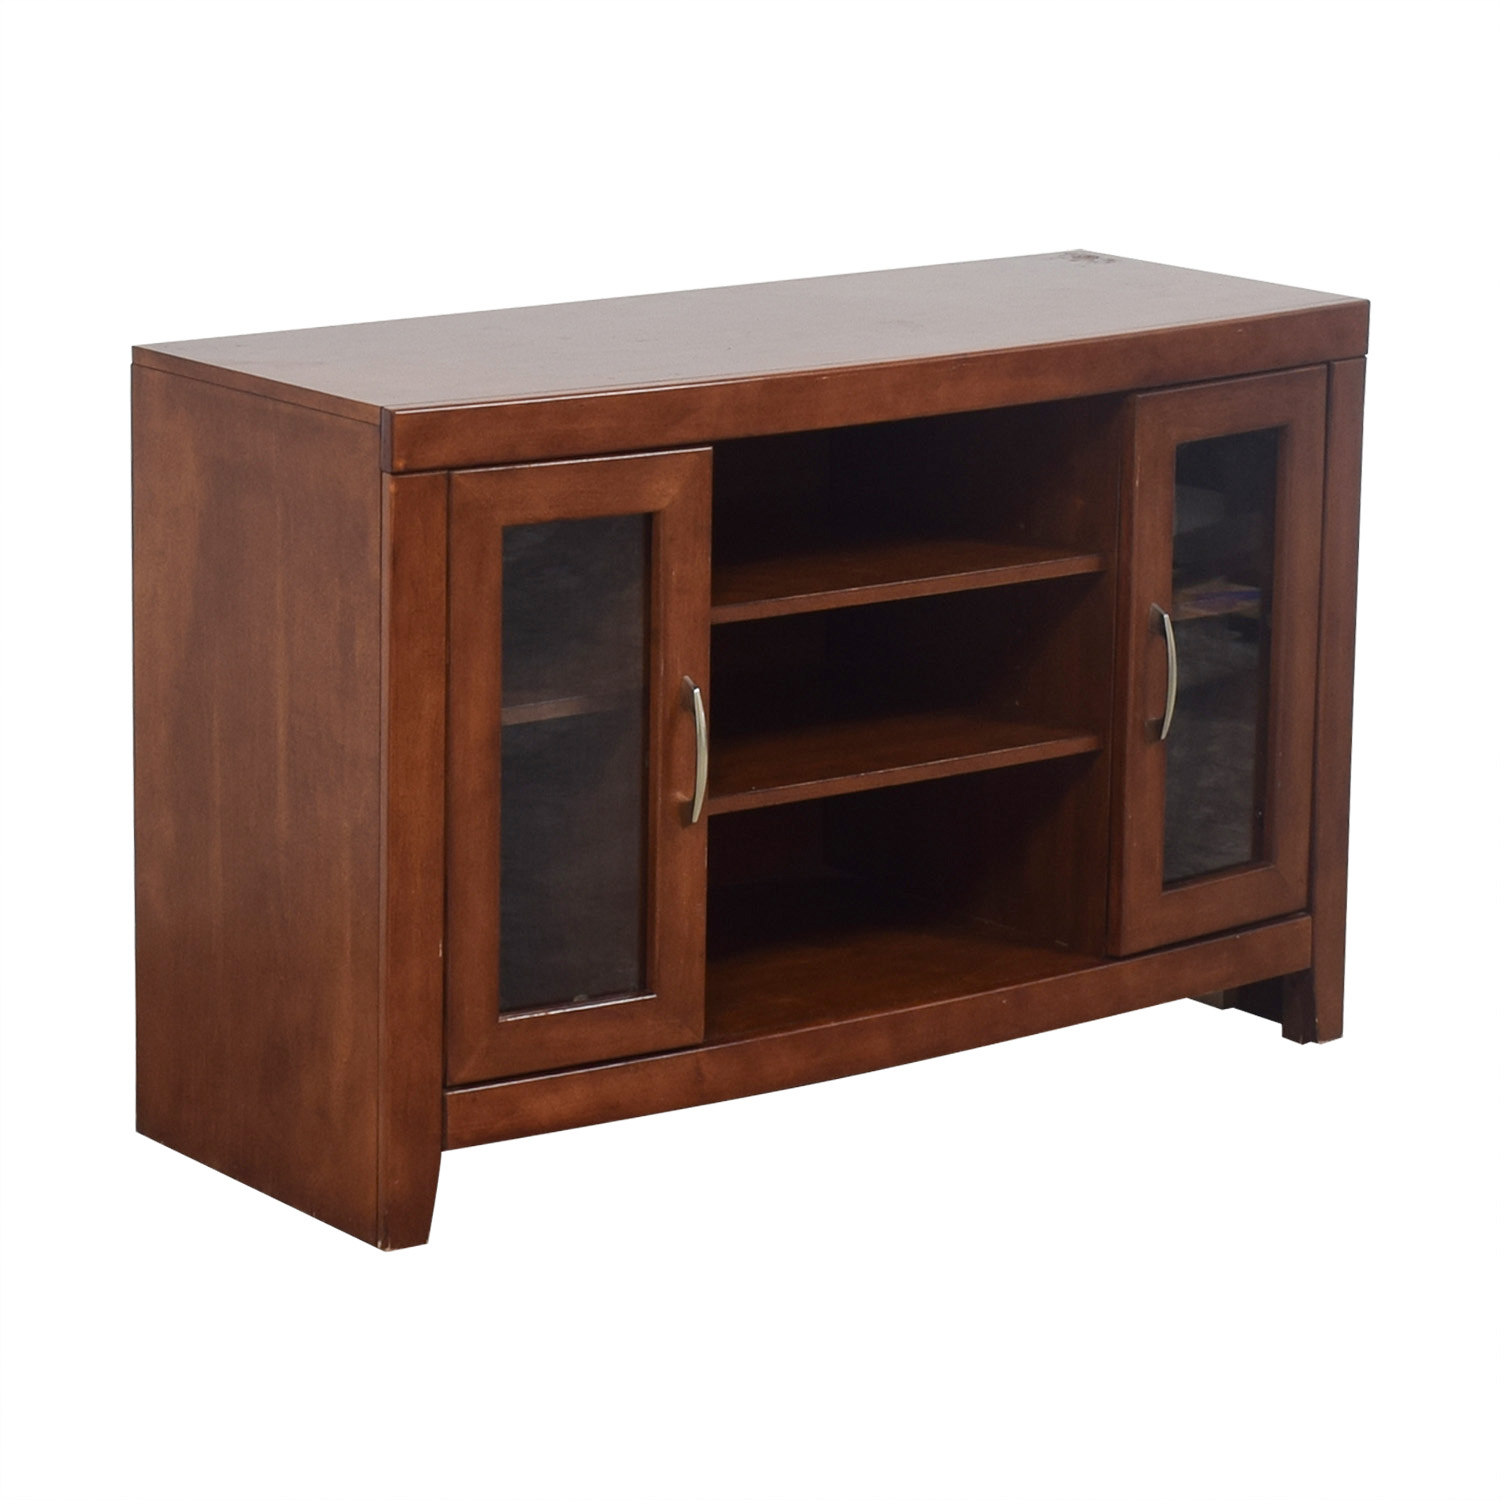 Raymour & Flanigan Raymour & Flanigan Del Mar Cherry TV Stand